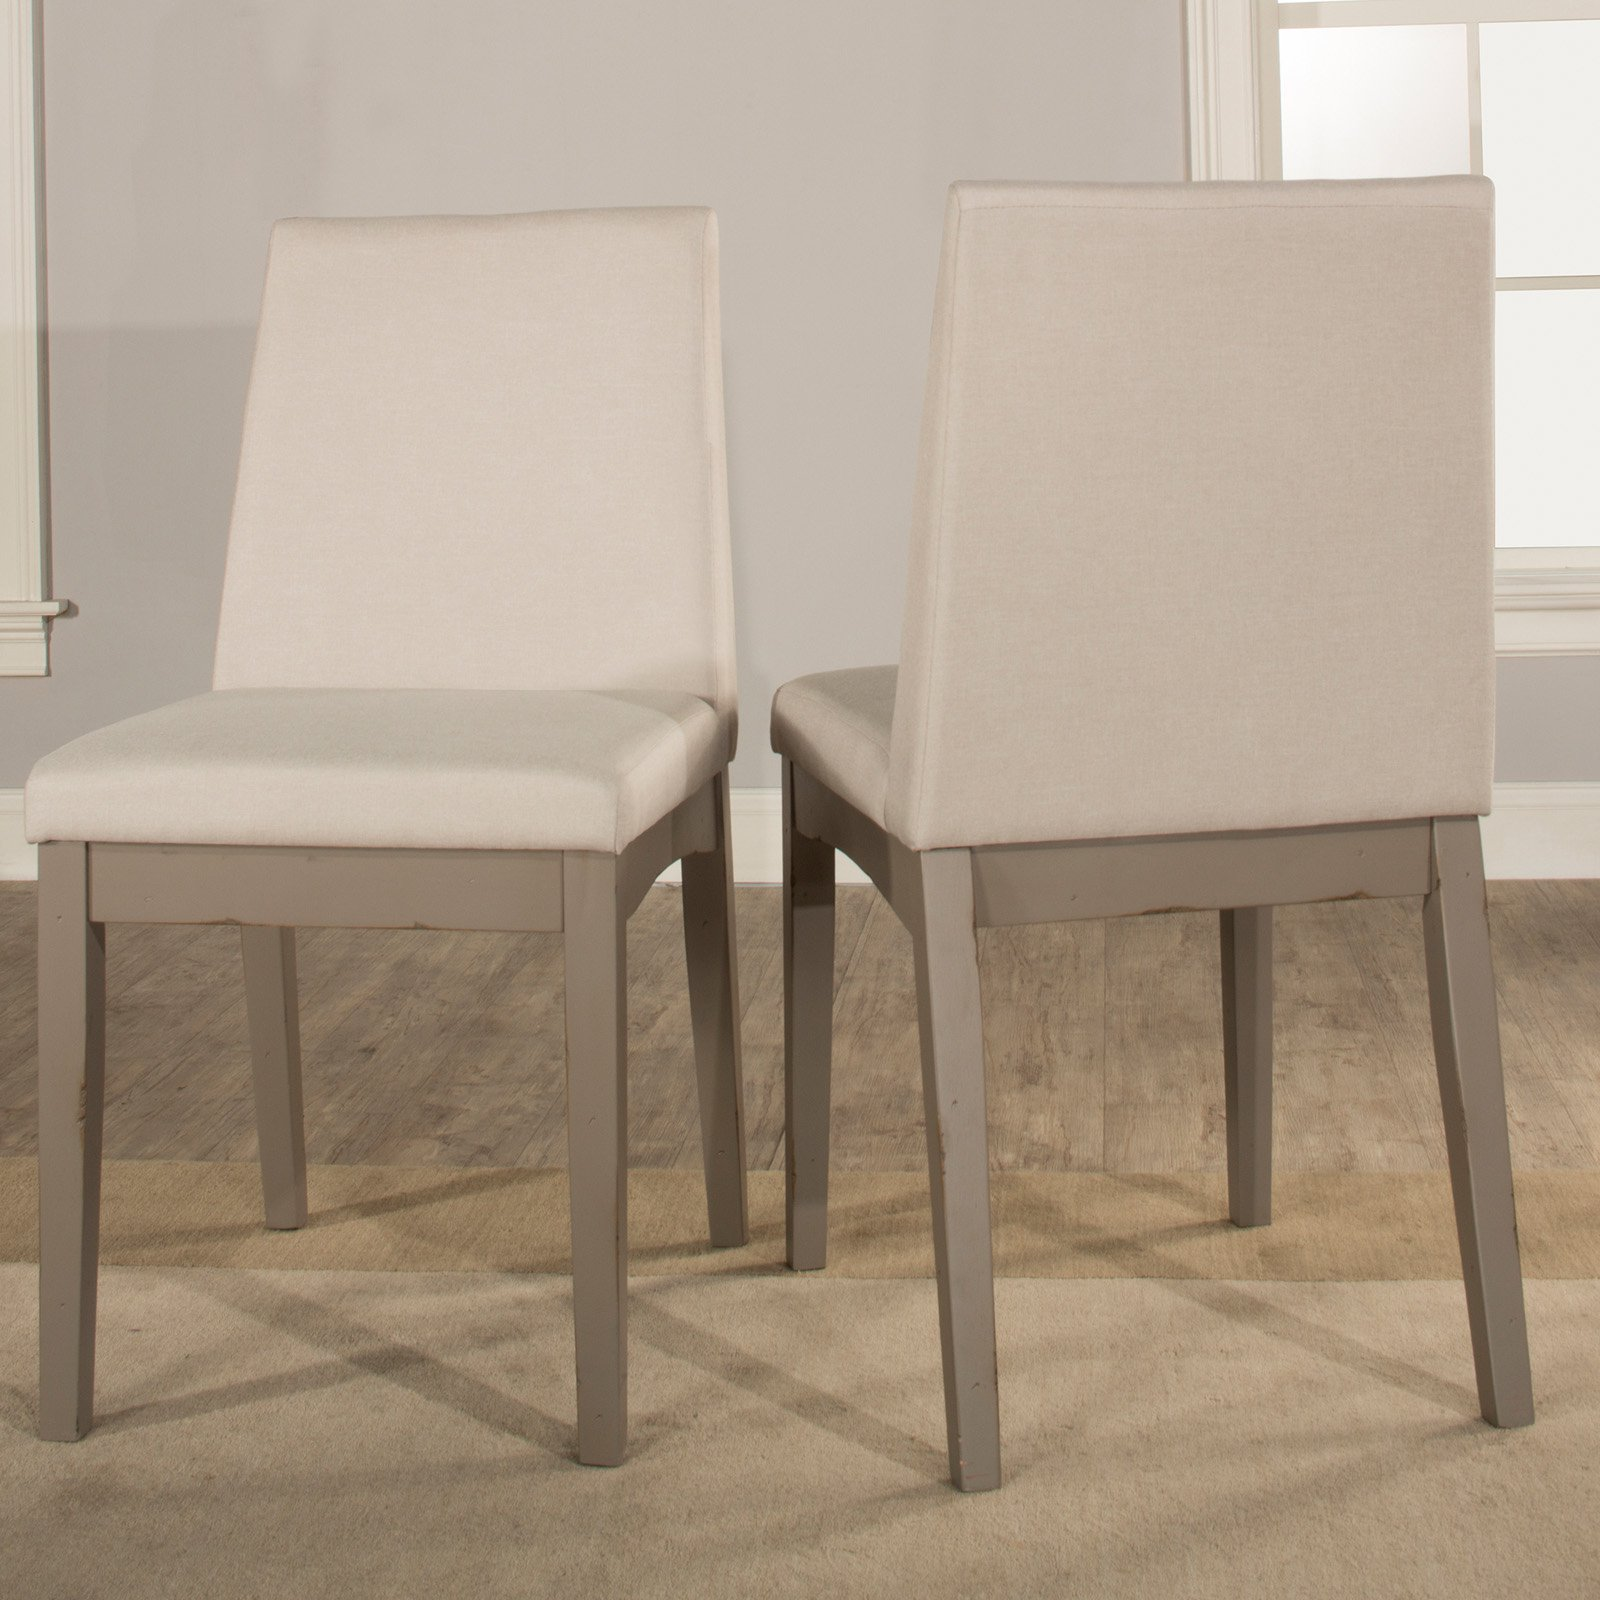 Hillsdale furniture clarion upholstered dining chair set of 2 distressed gray walmart com